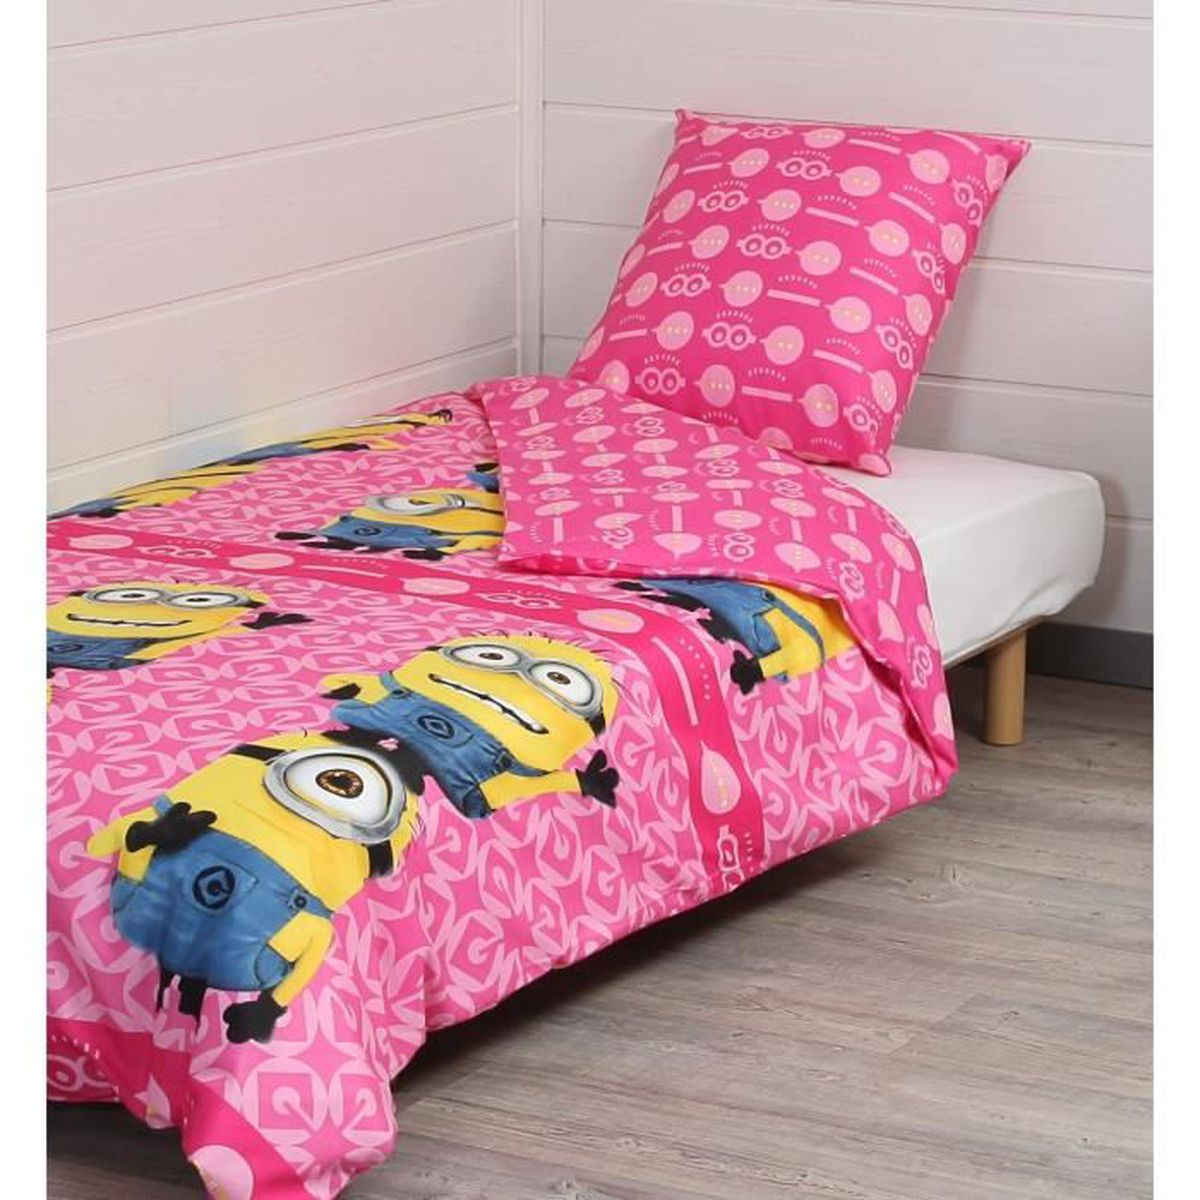 les minions parure de couette 1 housse de couette 140x200 cm 1 taie d 39 oreiller 60x70 cm rose. Black Bedroom Furniture Sets. Home Design Ideas